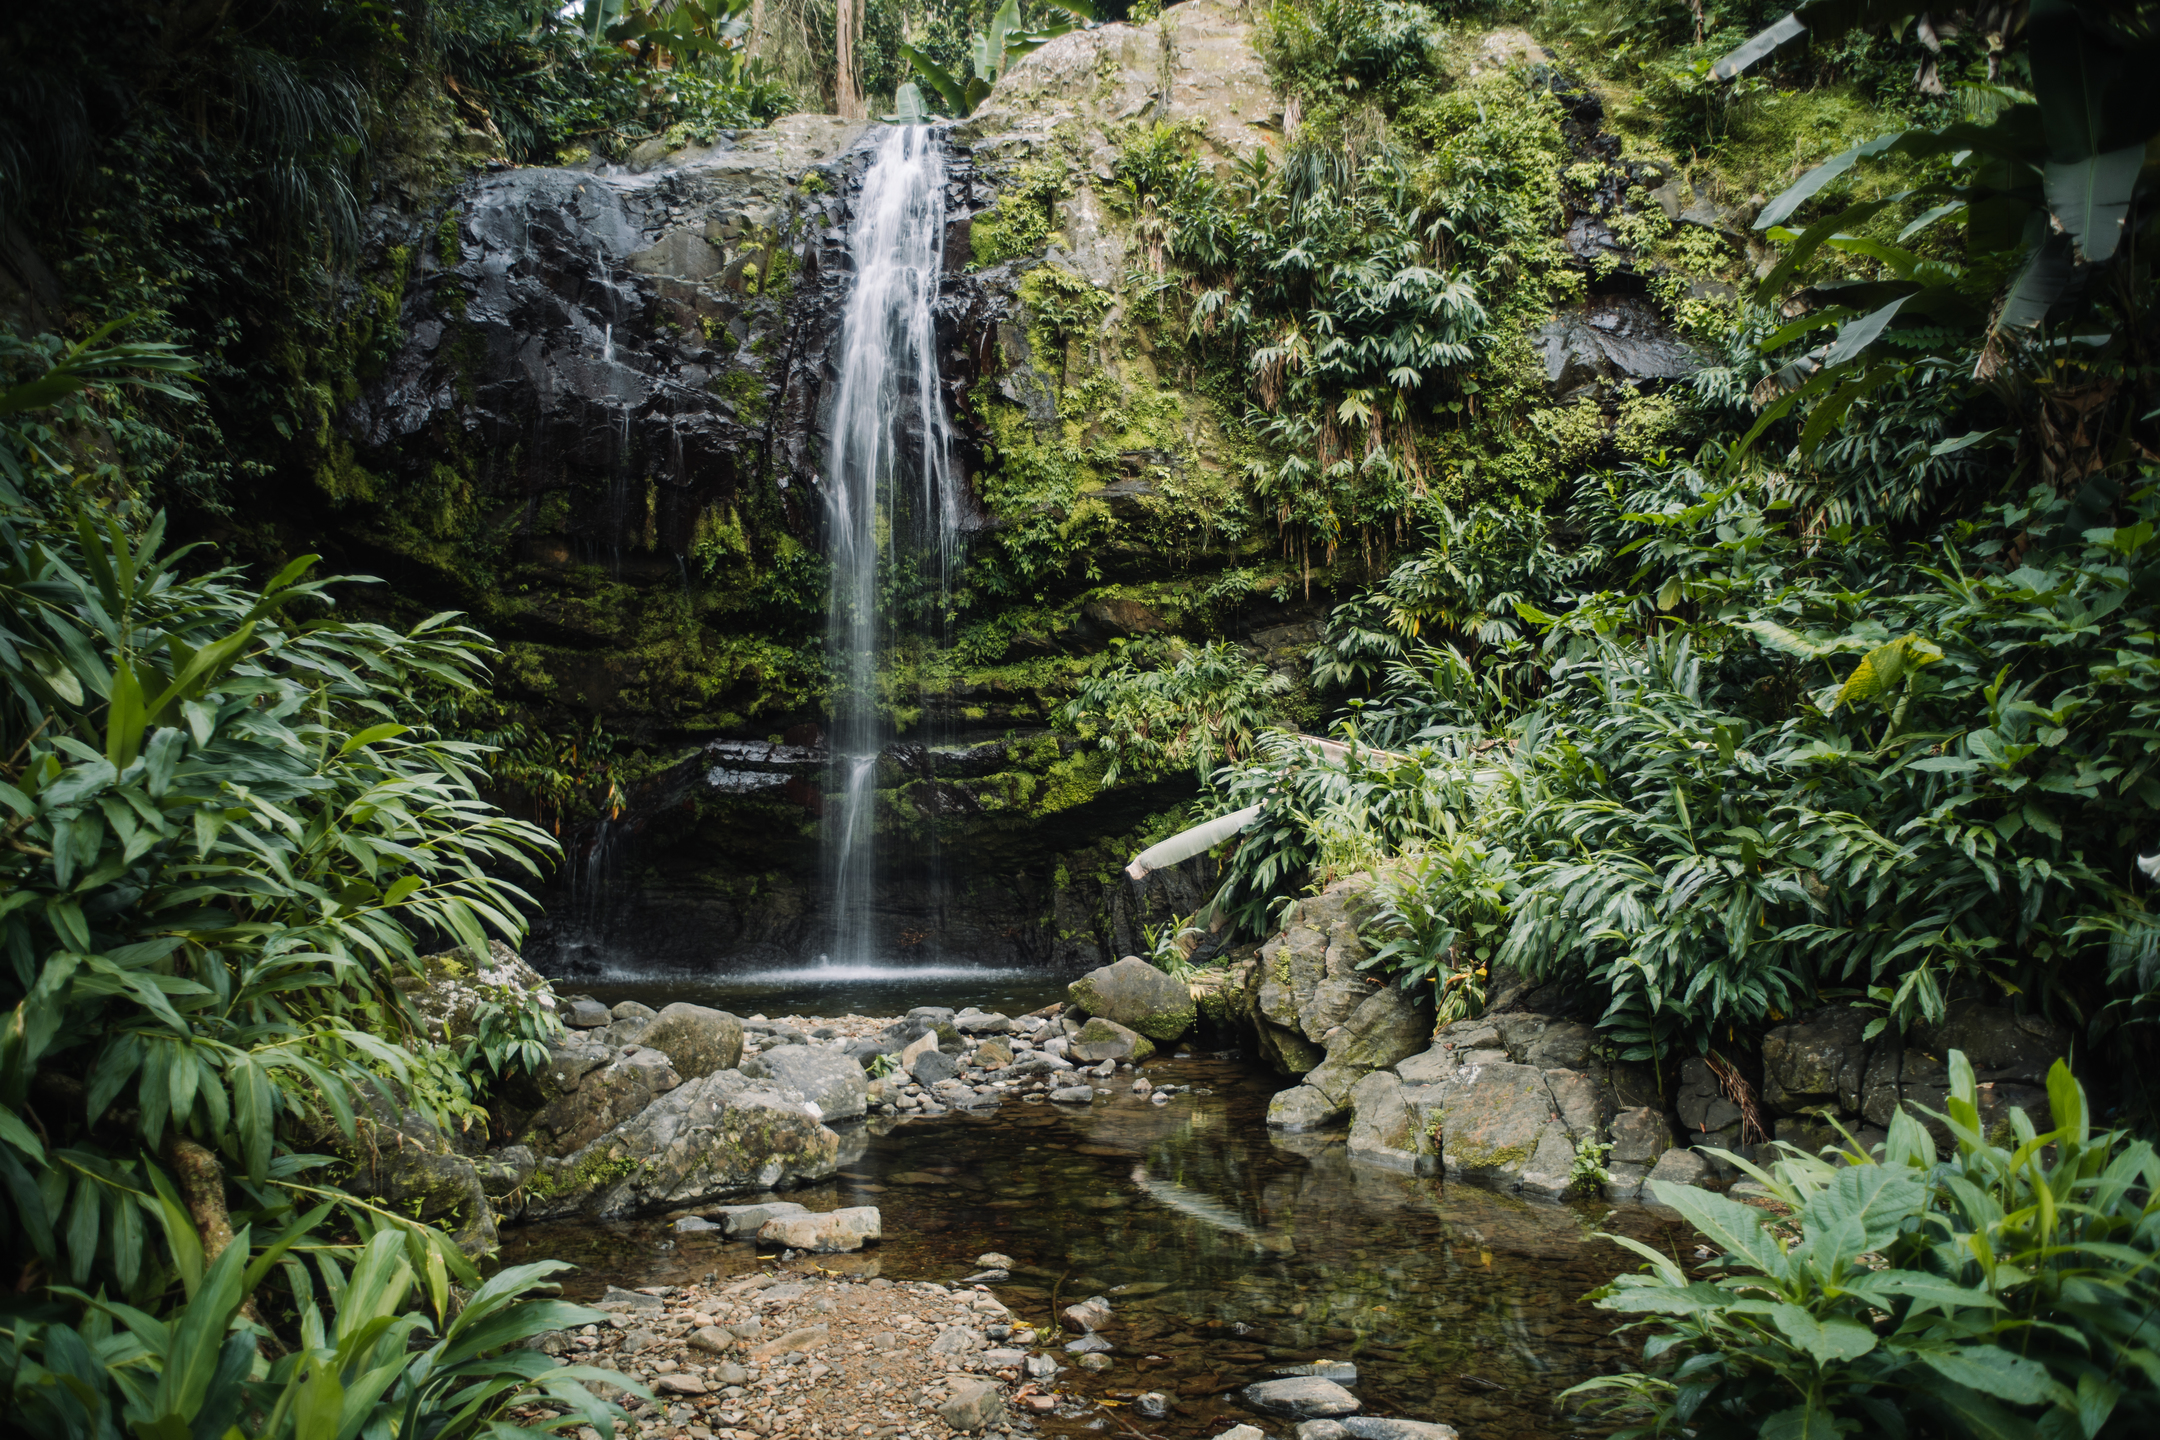 The Las Delicias waterfall in Ciales